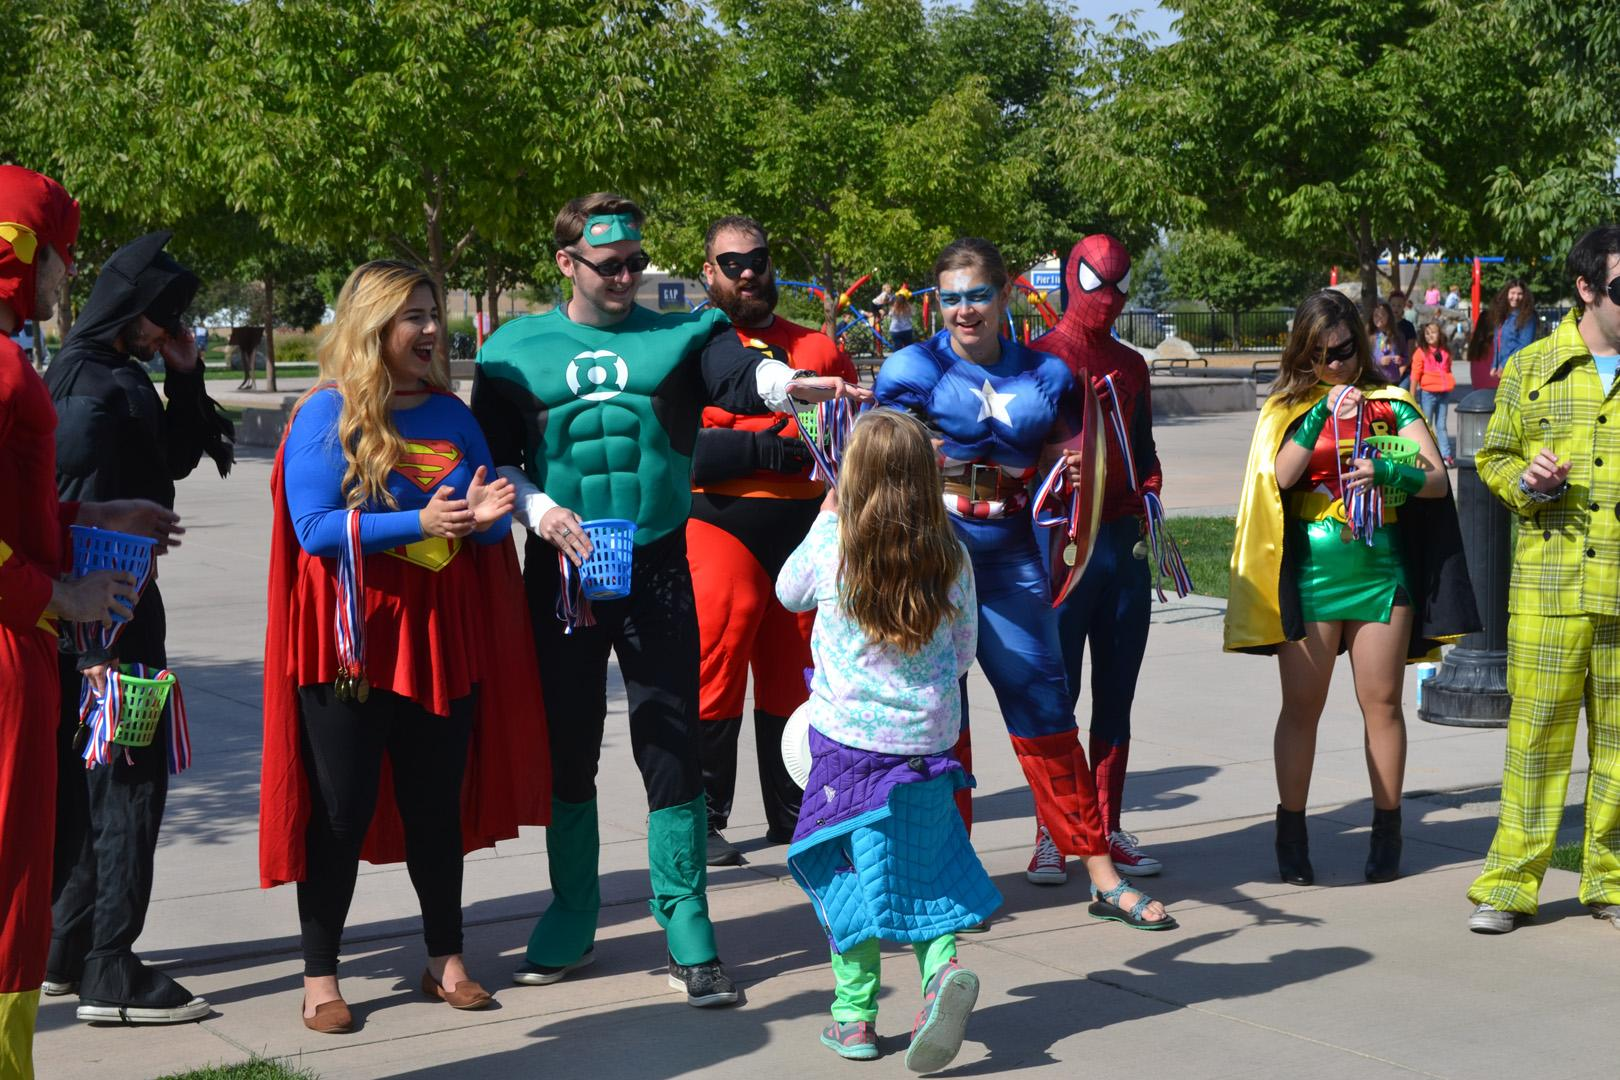 The 4th annual NF walk took place on Saturday in Julius Kleiner Park. It was a fun-filled day with interactive superheroes, superhero activities, face painting, a dance off and more! Kids had the chance to dress up like superheroes and even meet some superheroes at the finish line. Proceeds from the walk benefit the Children's Tumor Foundation, a leader in the fight against Neurofibromatosis. NF is a rare genetic disorder that causes tumors to grow on nerves throughout the body. The disorder affects 1 in 3,000 people. There is currently no treatment or cure for NF but those who took part in the event raised money to fund critical research. (KBOI Staff Photo)